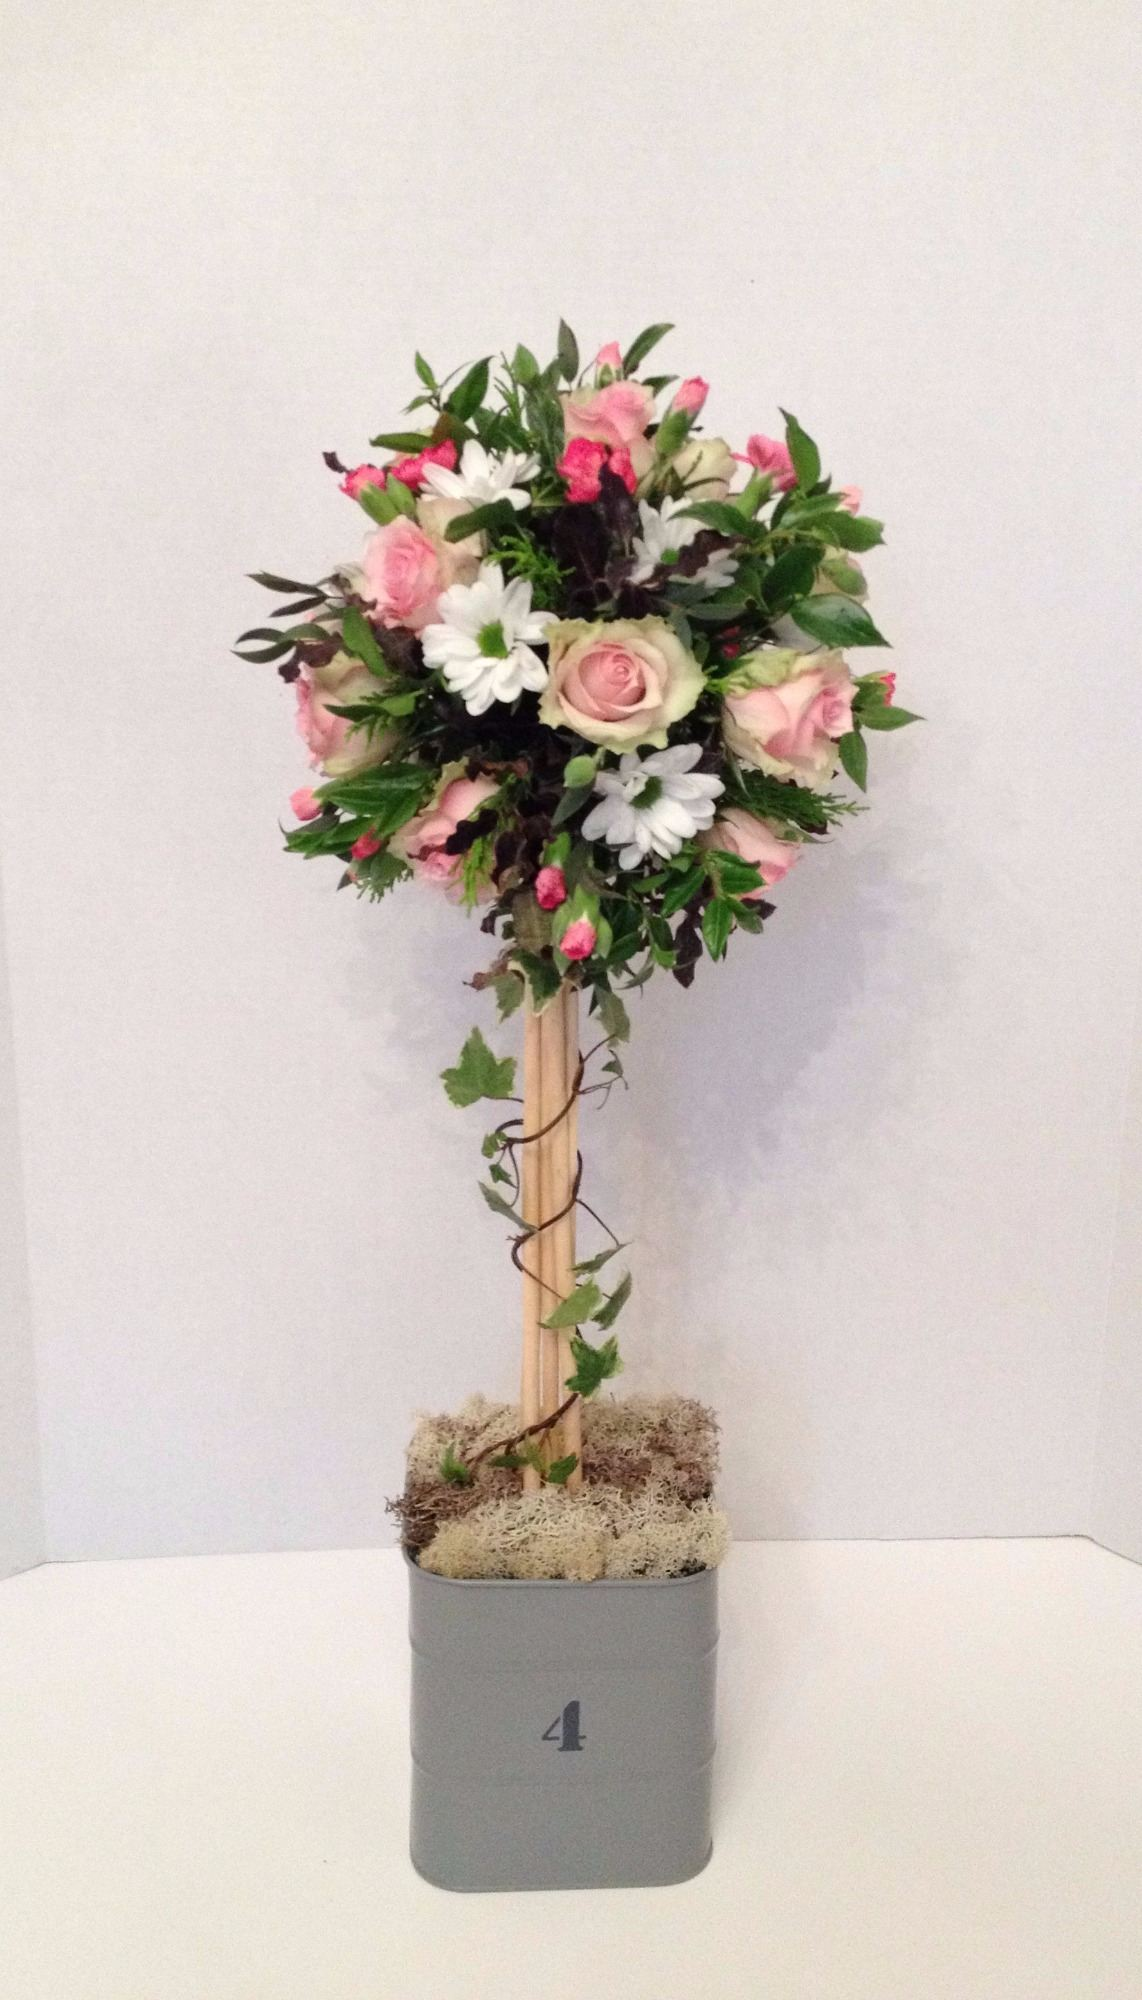 Topiary Tree Floral Design Delicate Romantic Soft Pinks